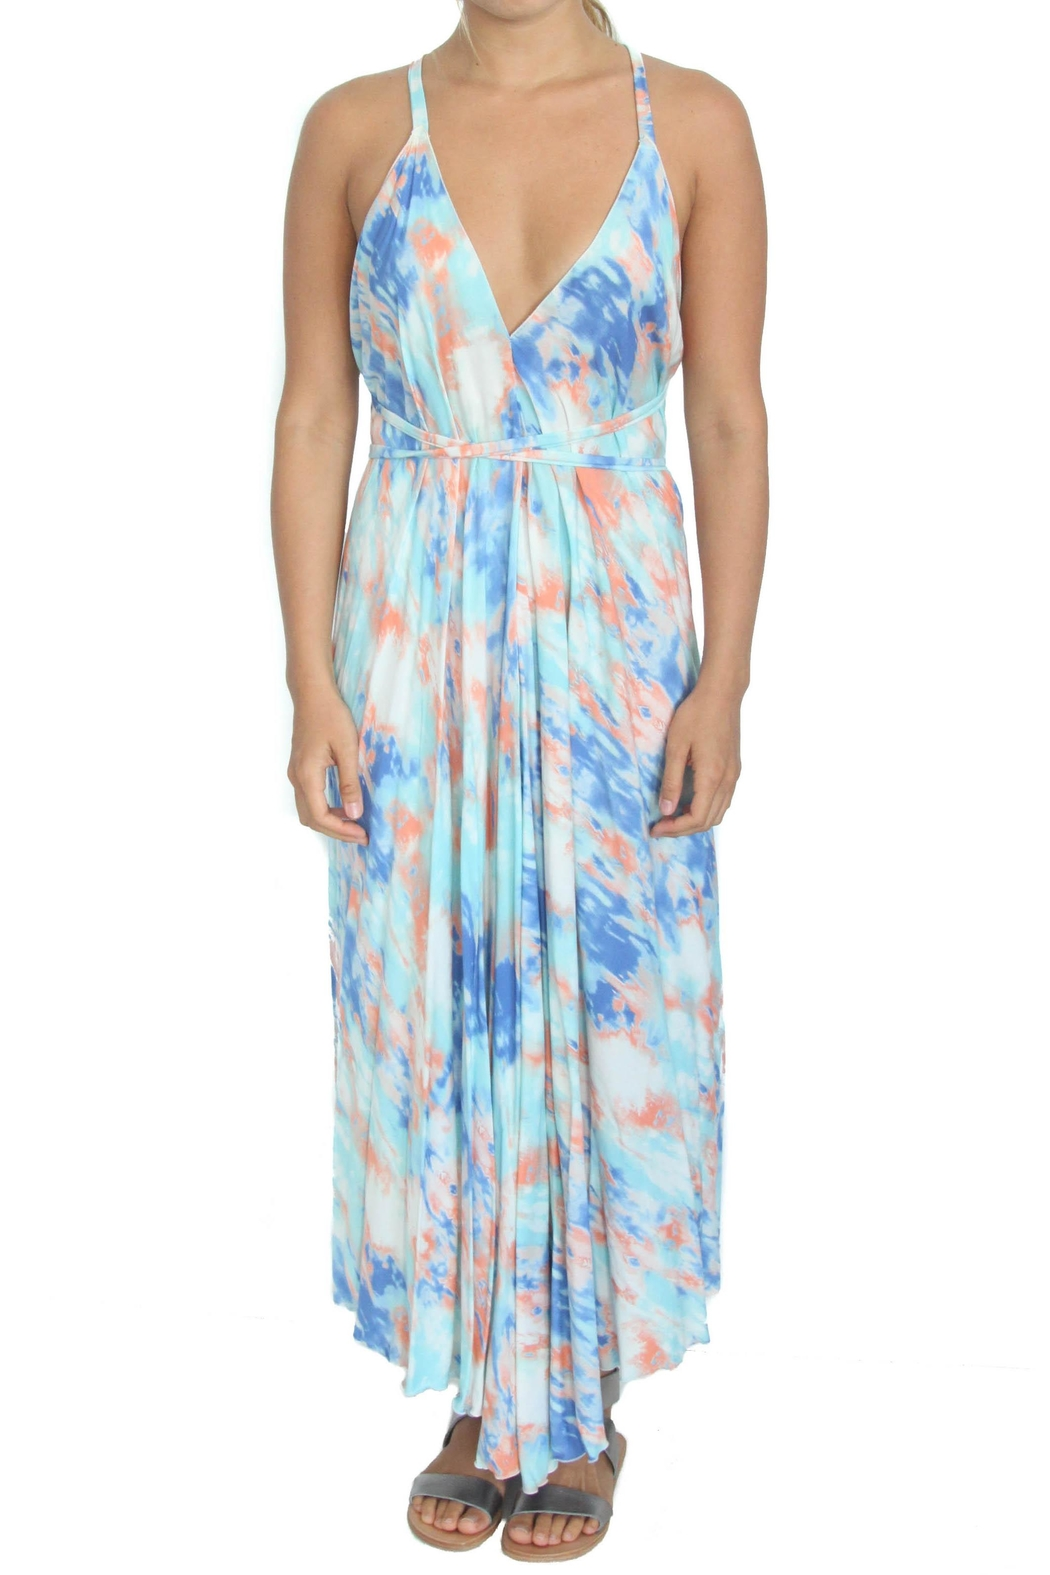 LOVEleigh Noosa Pool Dress - Front Cropped Image